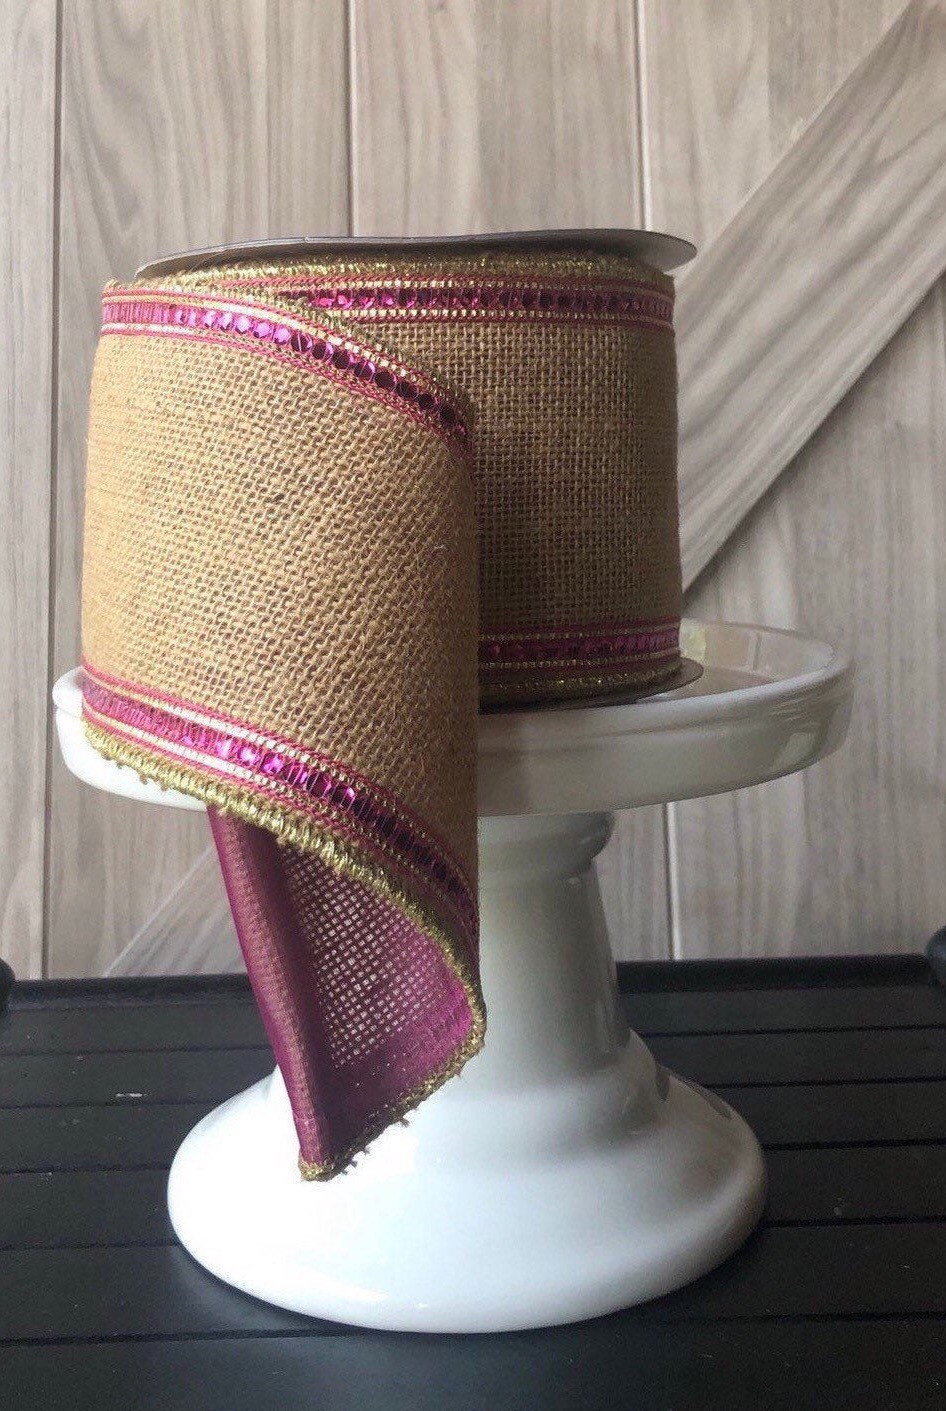 10 Yards, 4 Inch Wired Ribbon, Burlap Hot Pink Wire Jeweled Ribbon